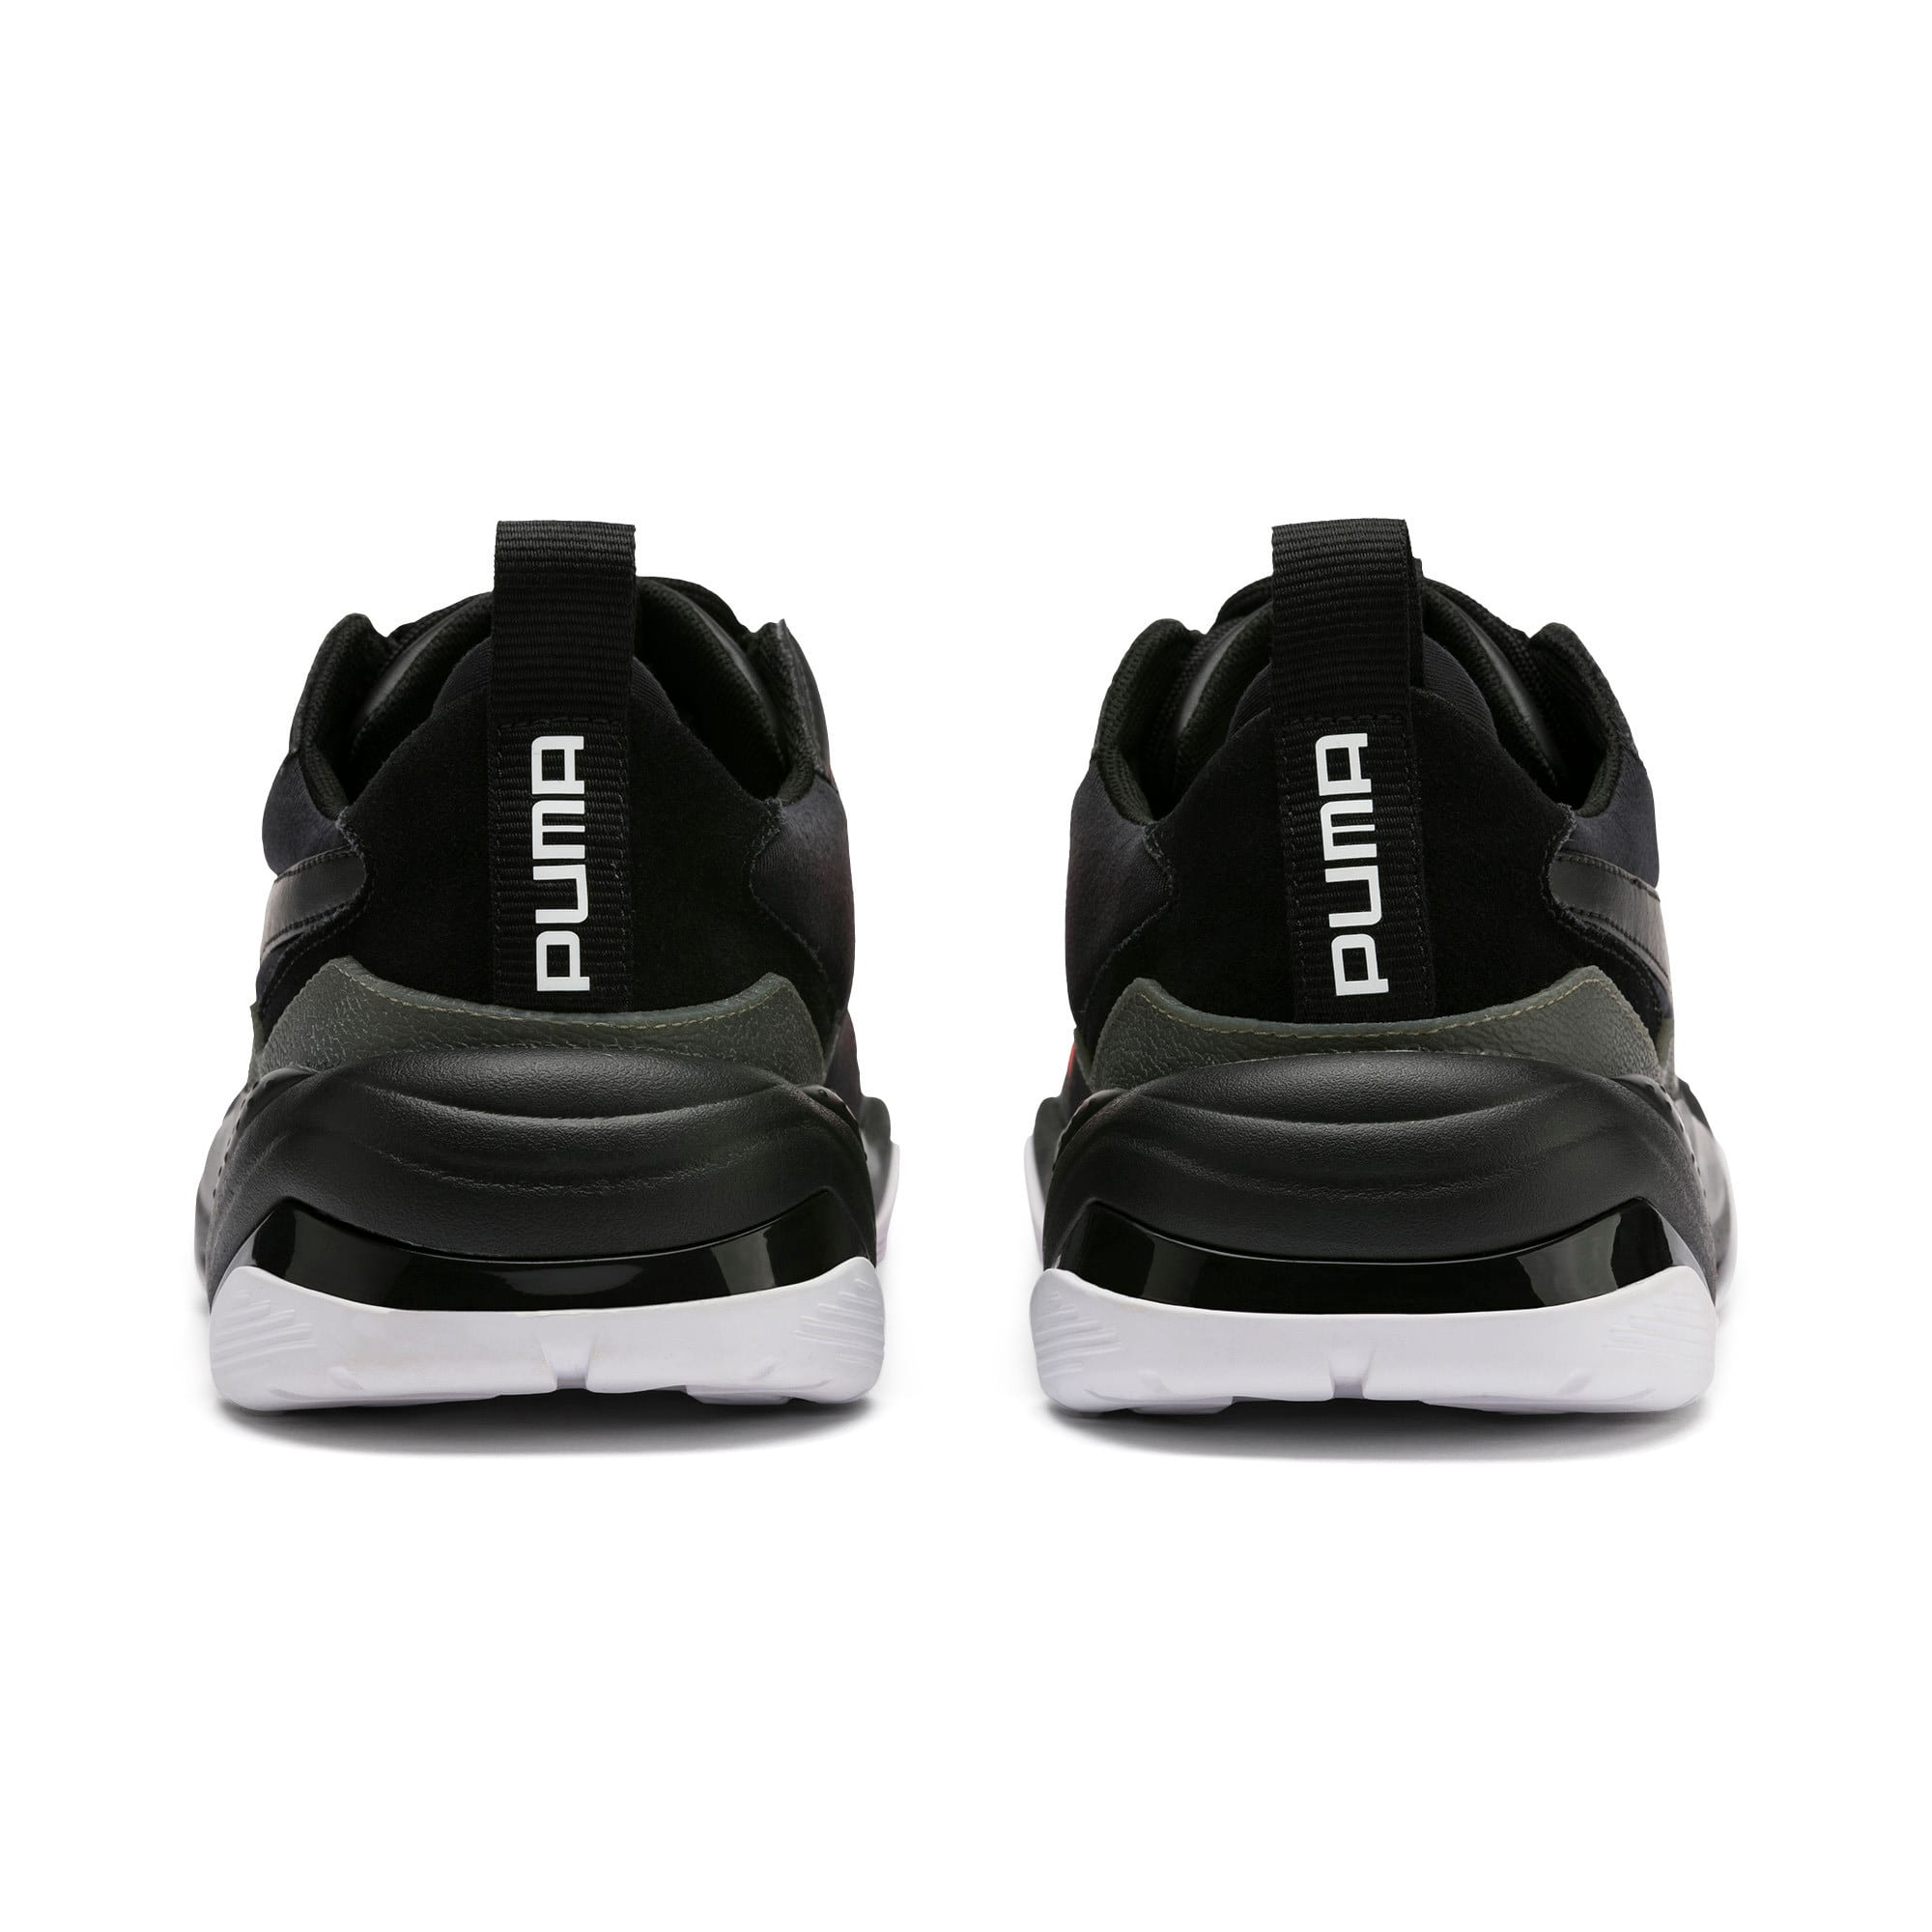 Thumbnail 4 of Thunder Fashion 2.0 Trainers, Puma Black-Nrgy Red, medium